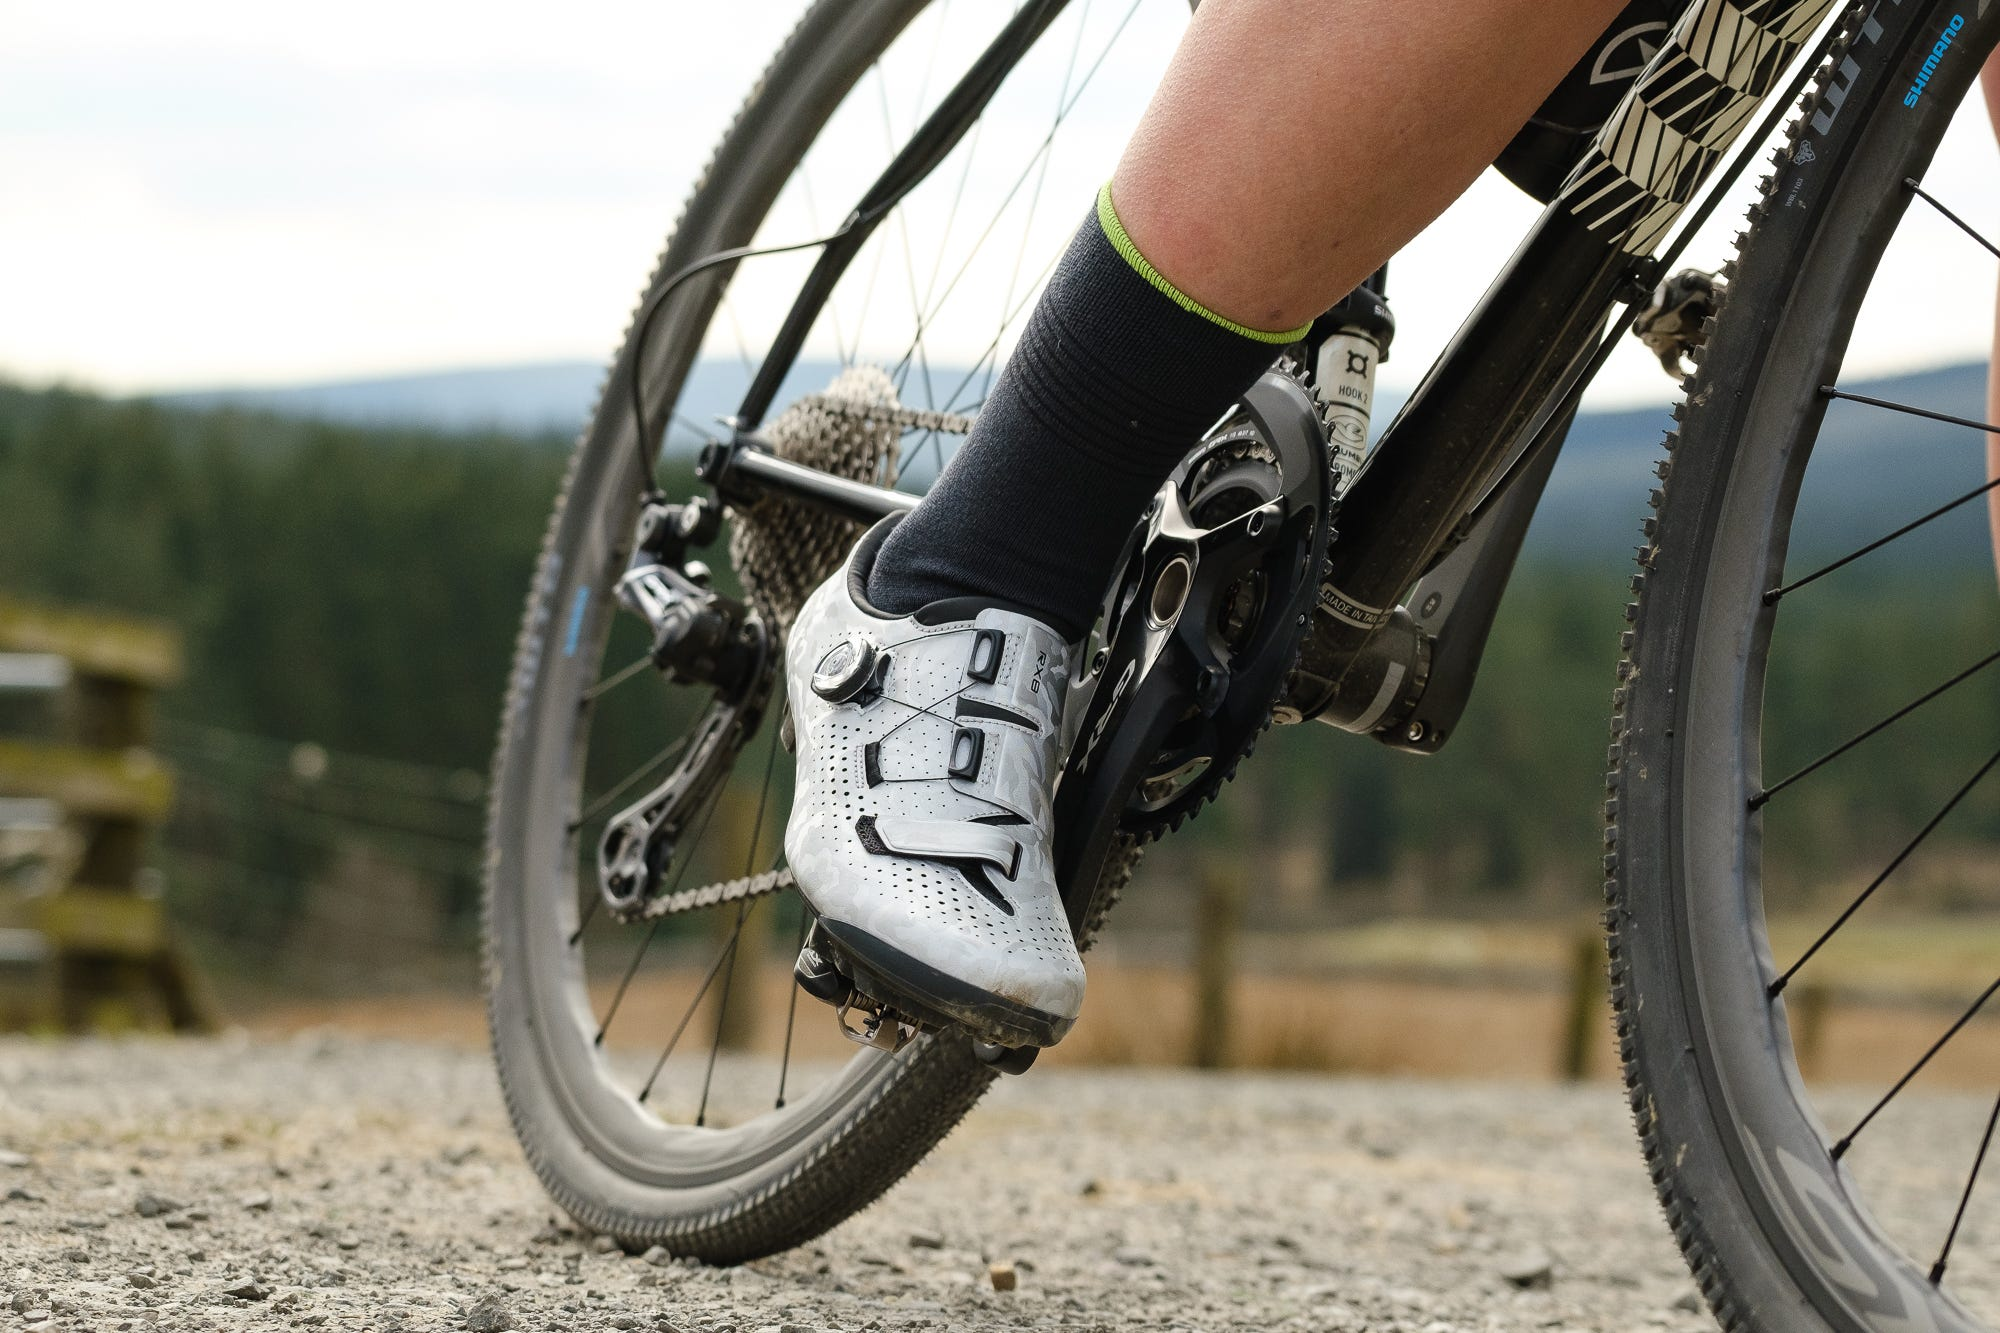 Shimano's RX8 shoes are the best of both worlds